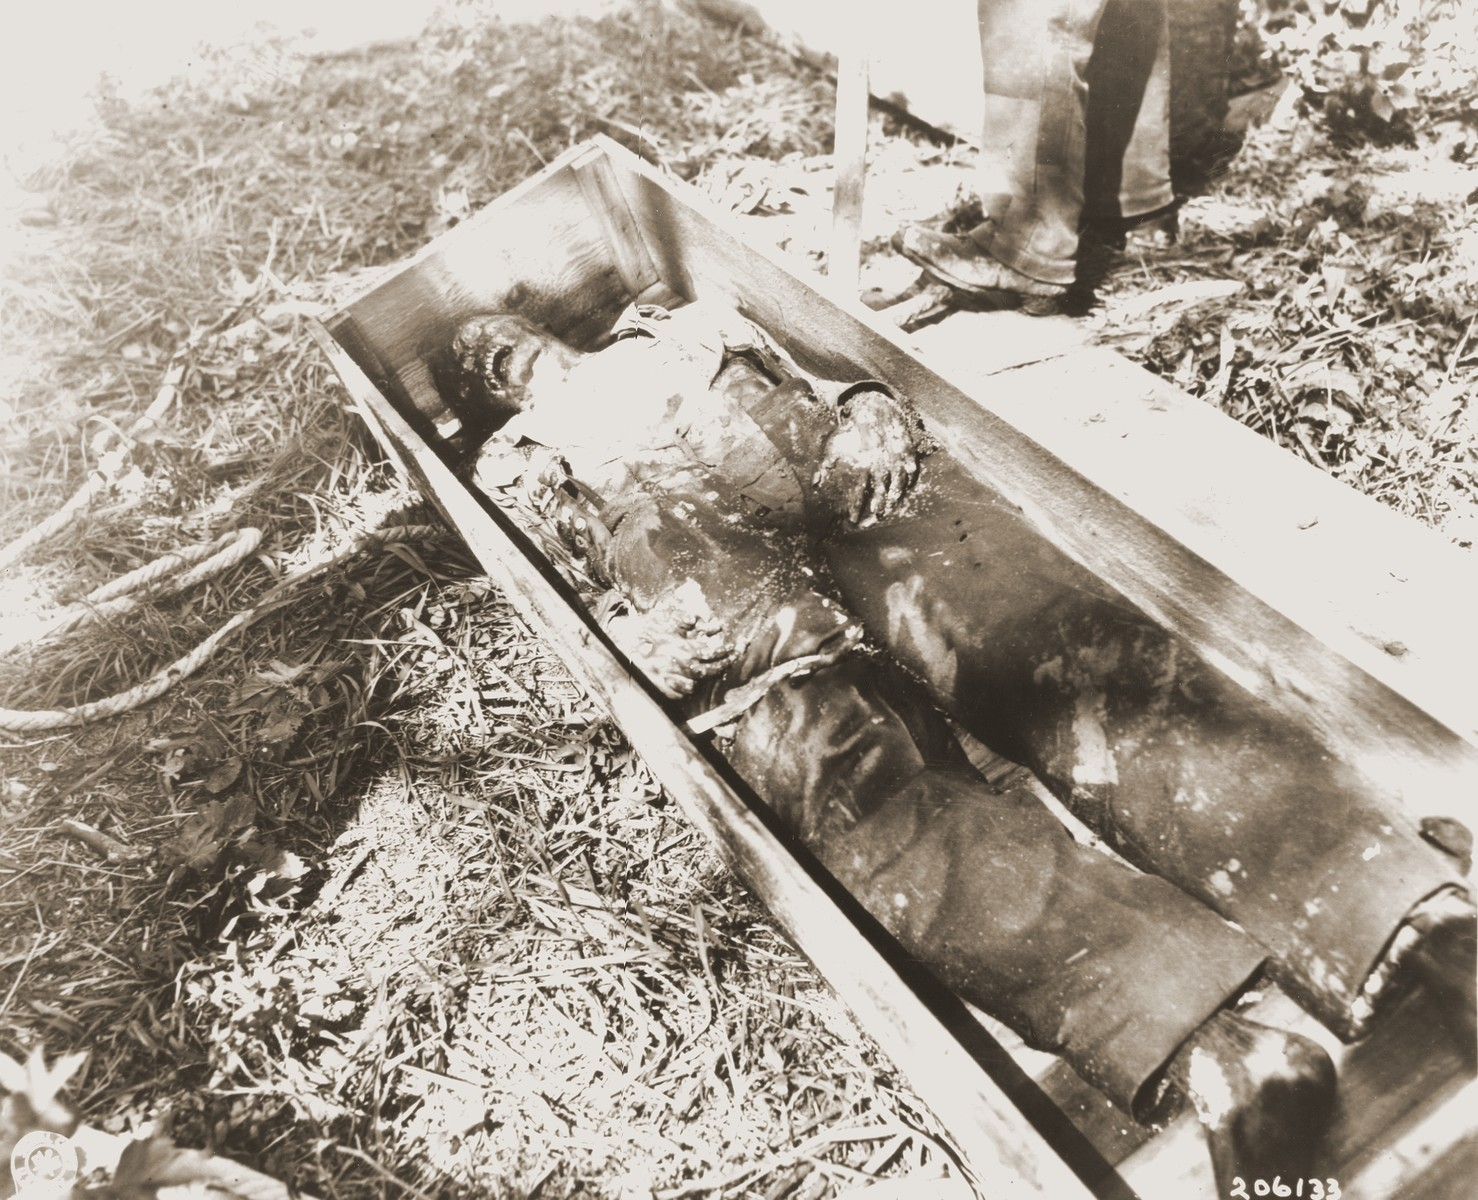 The body of a U.S. pilot who was shot by German police, along with two other American airmen, in the town of Lochtum.    After their crash landing, all three pilots were captured by local police and marched through Lochtum, where they were stoned by the inhabitants.  The pilots were then executed and their bodies buried in anonymous graves without dog tags or other identification.